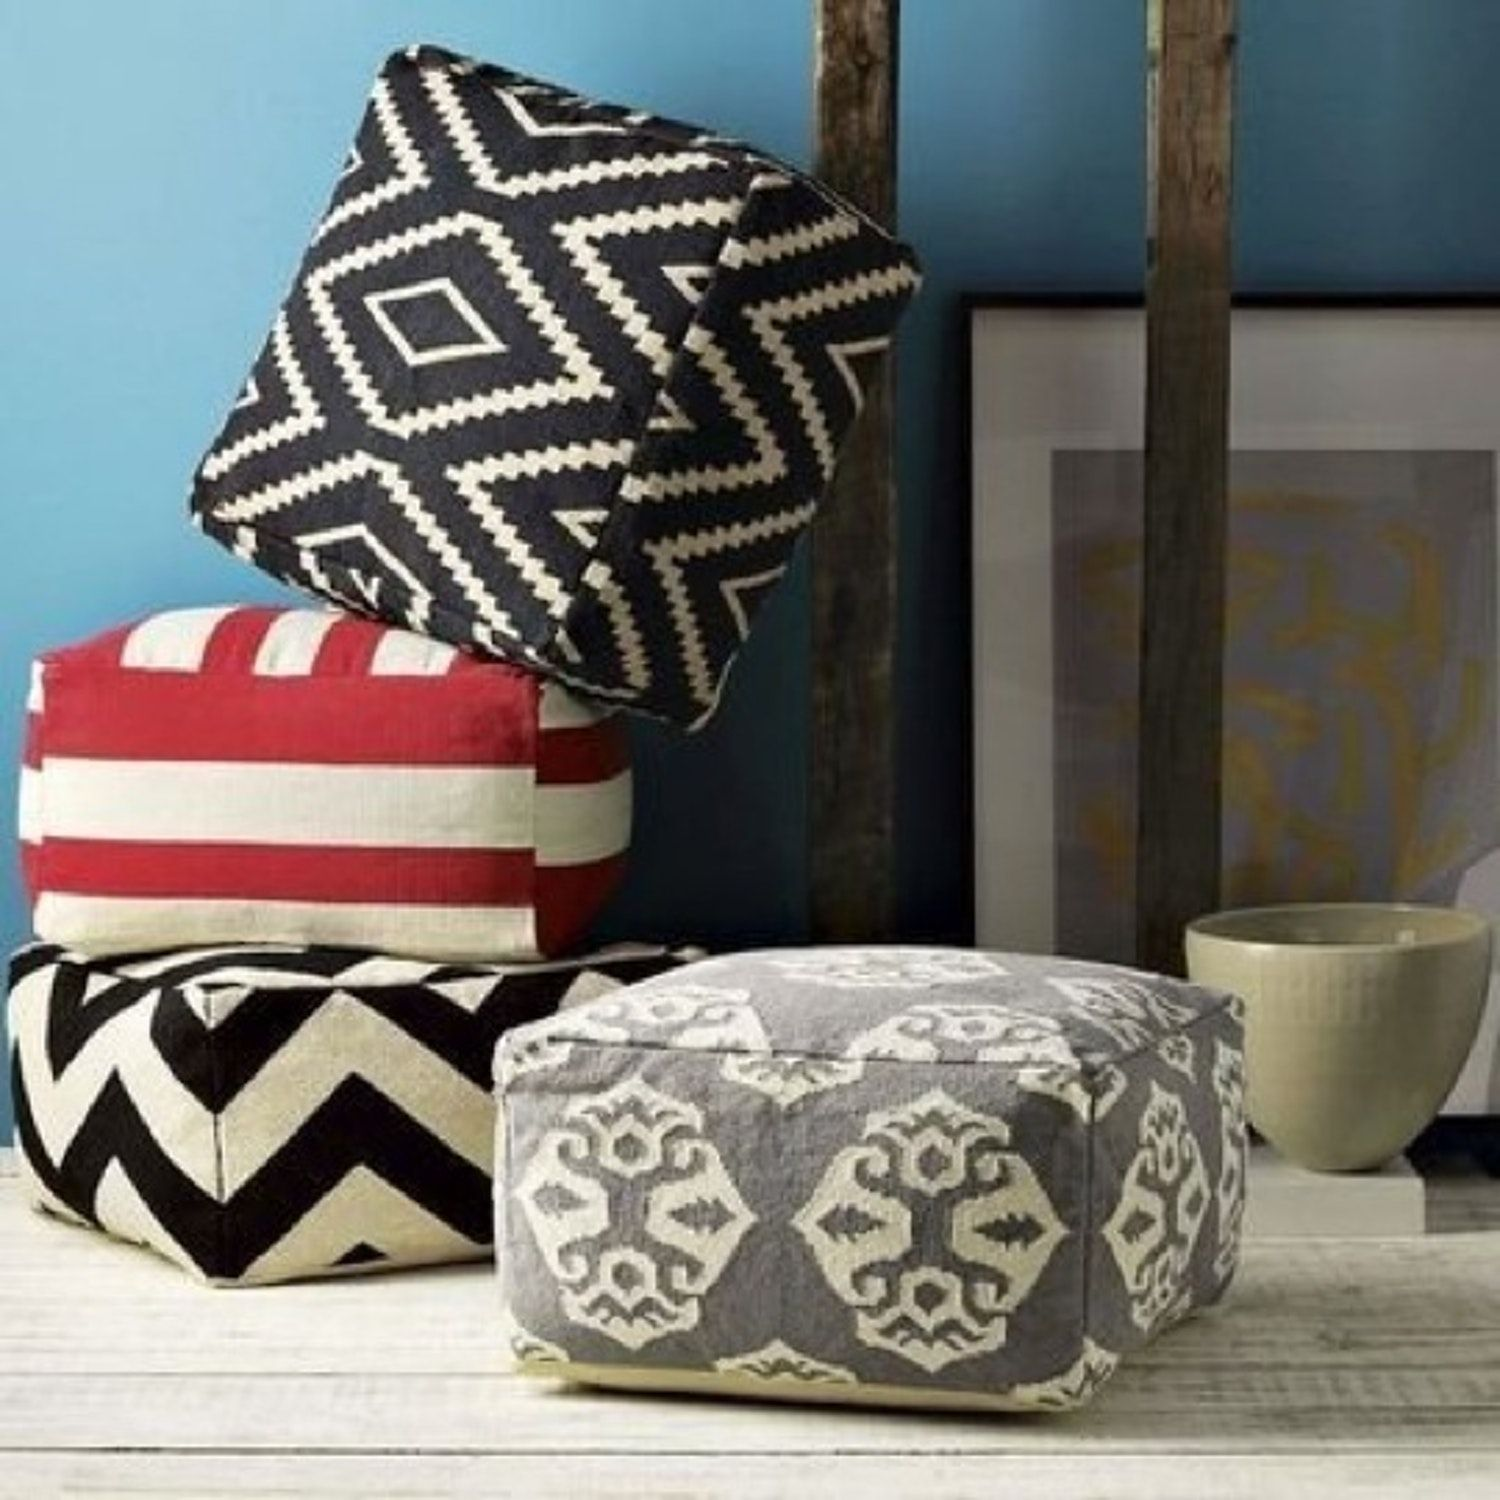 Weekend Project: Make Your Own Floor Pouf from $3 IKEA Mats   Floor ...